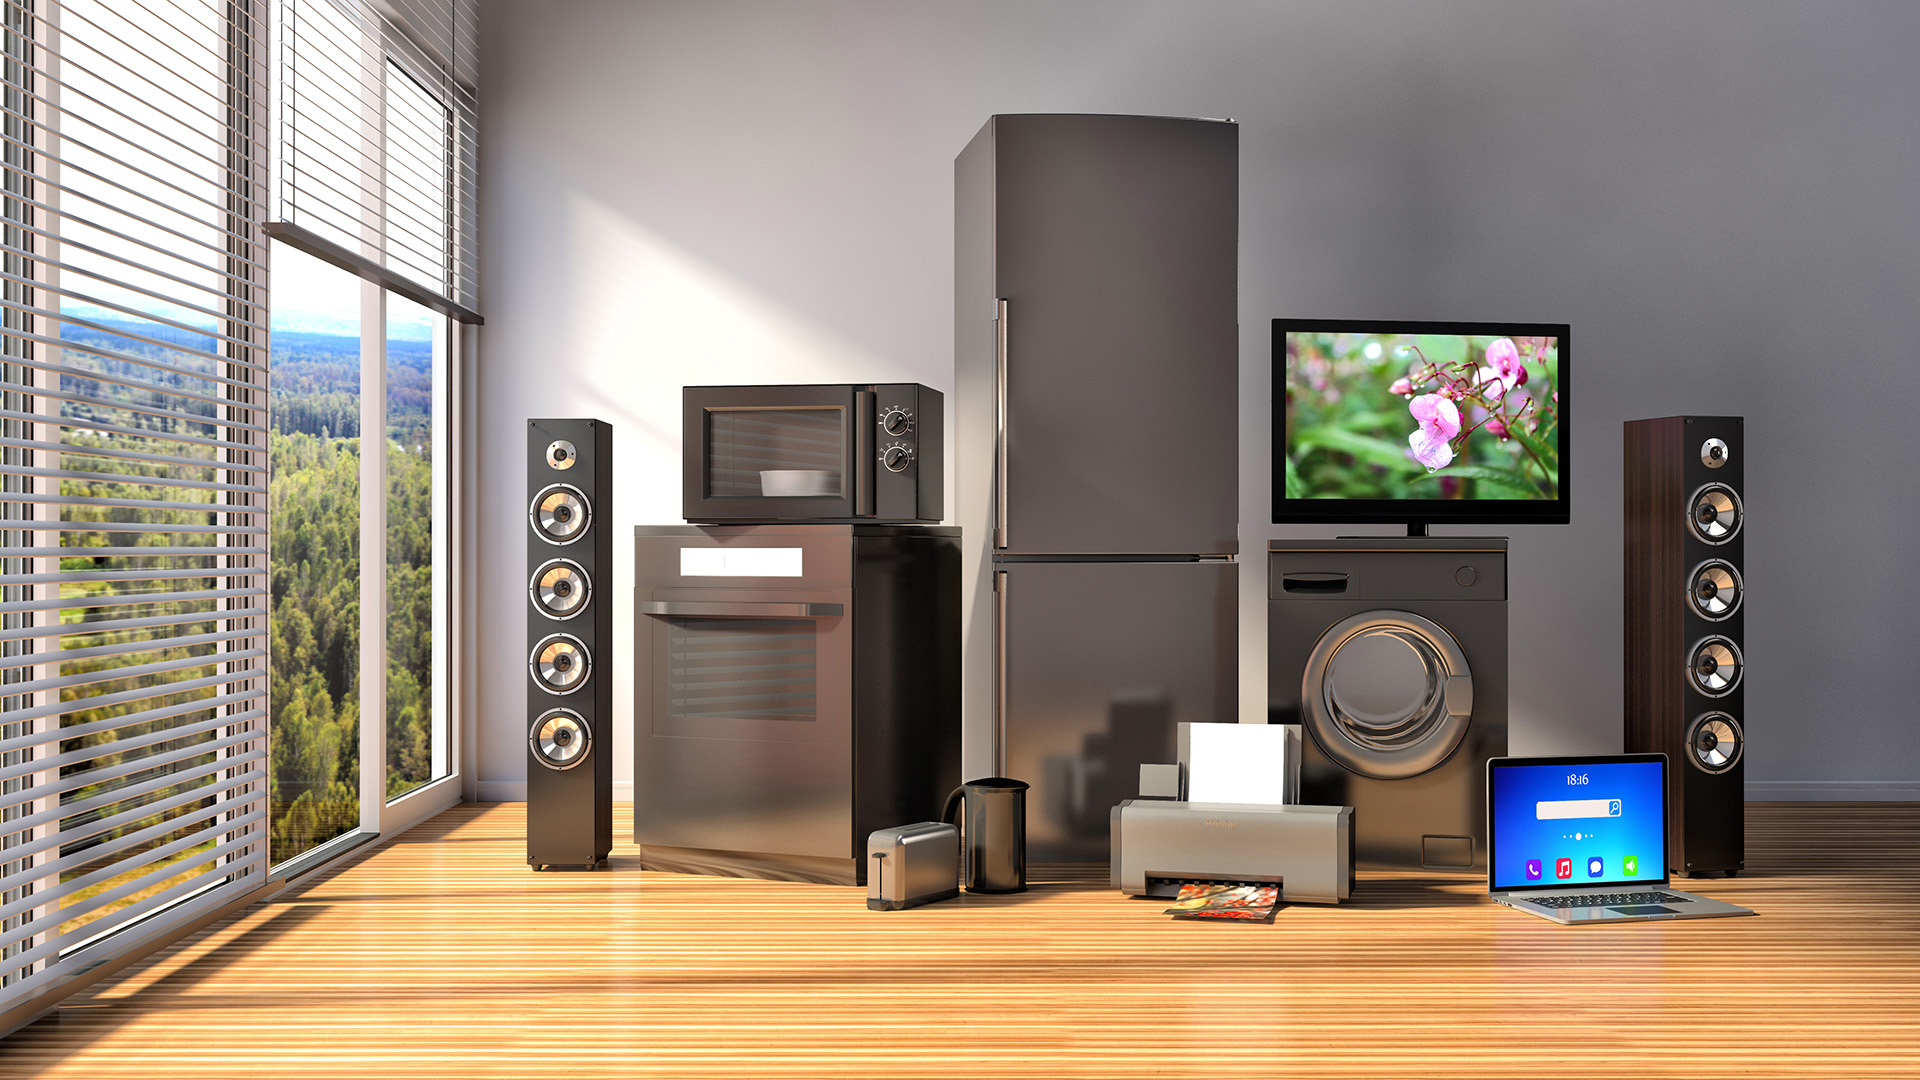 Electric home appliance repair & Installation services